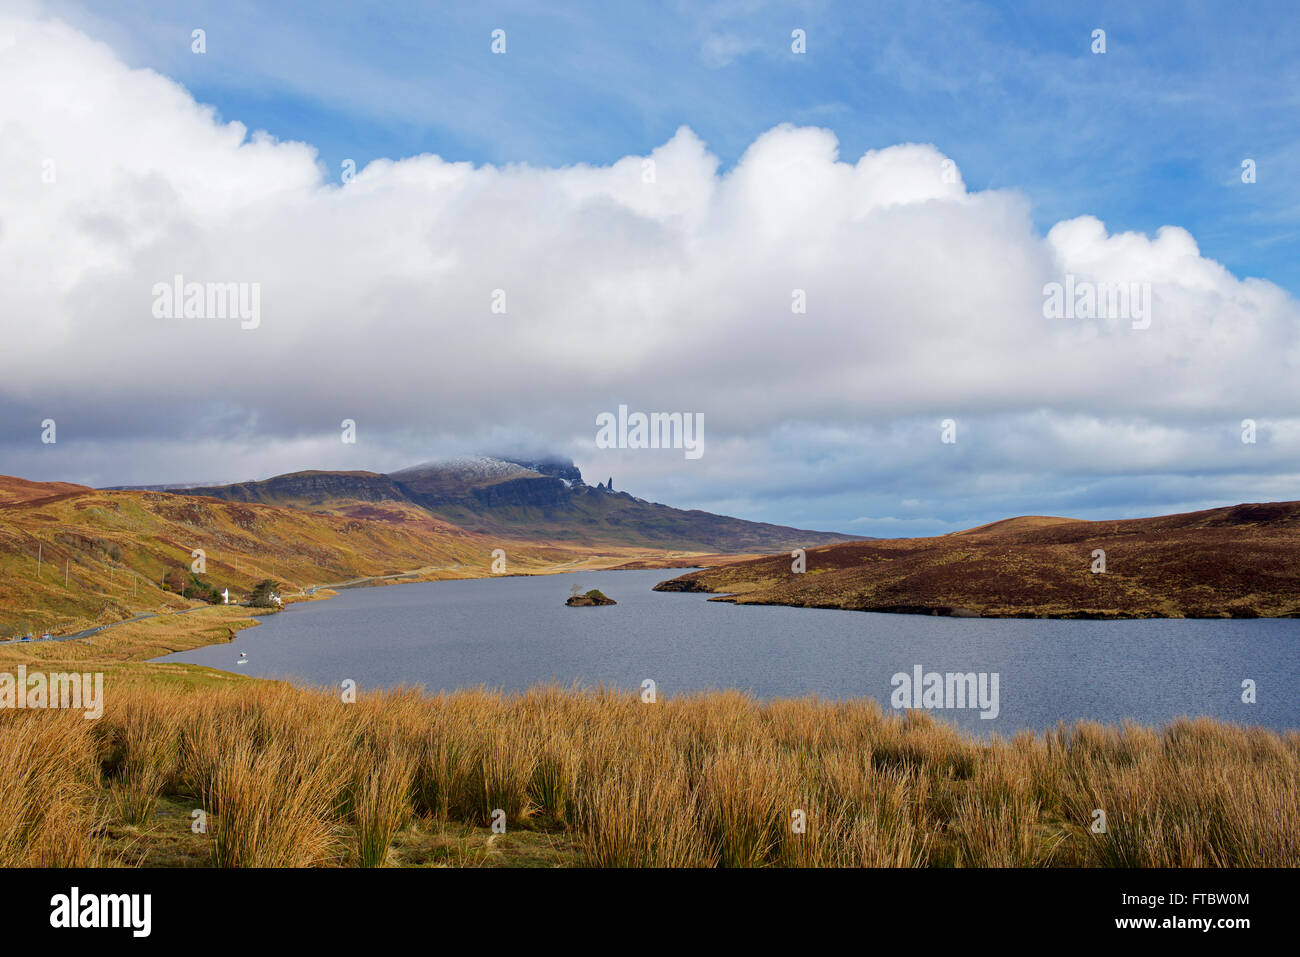 Loch Leathan and the Old Man of Storr, Isle of Skye Scotland UK - Stock Image